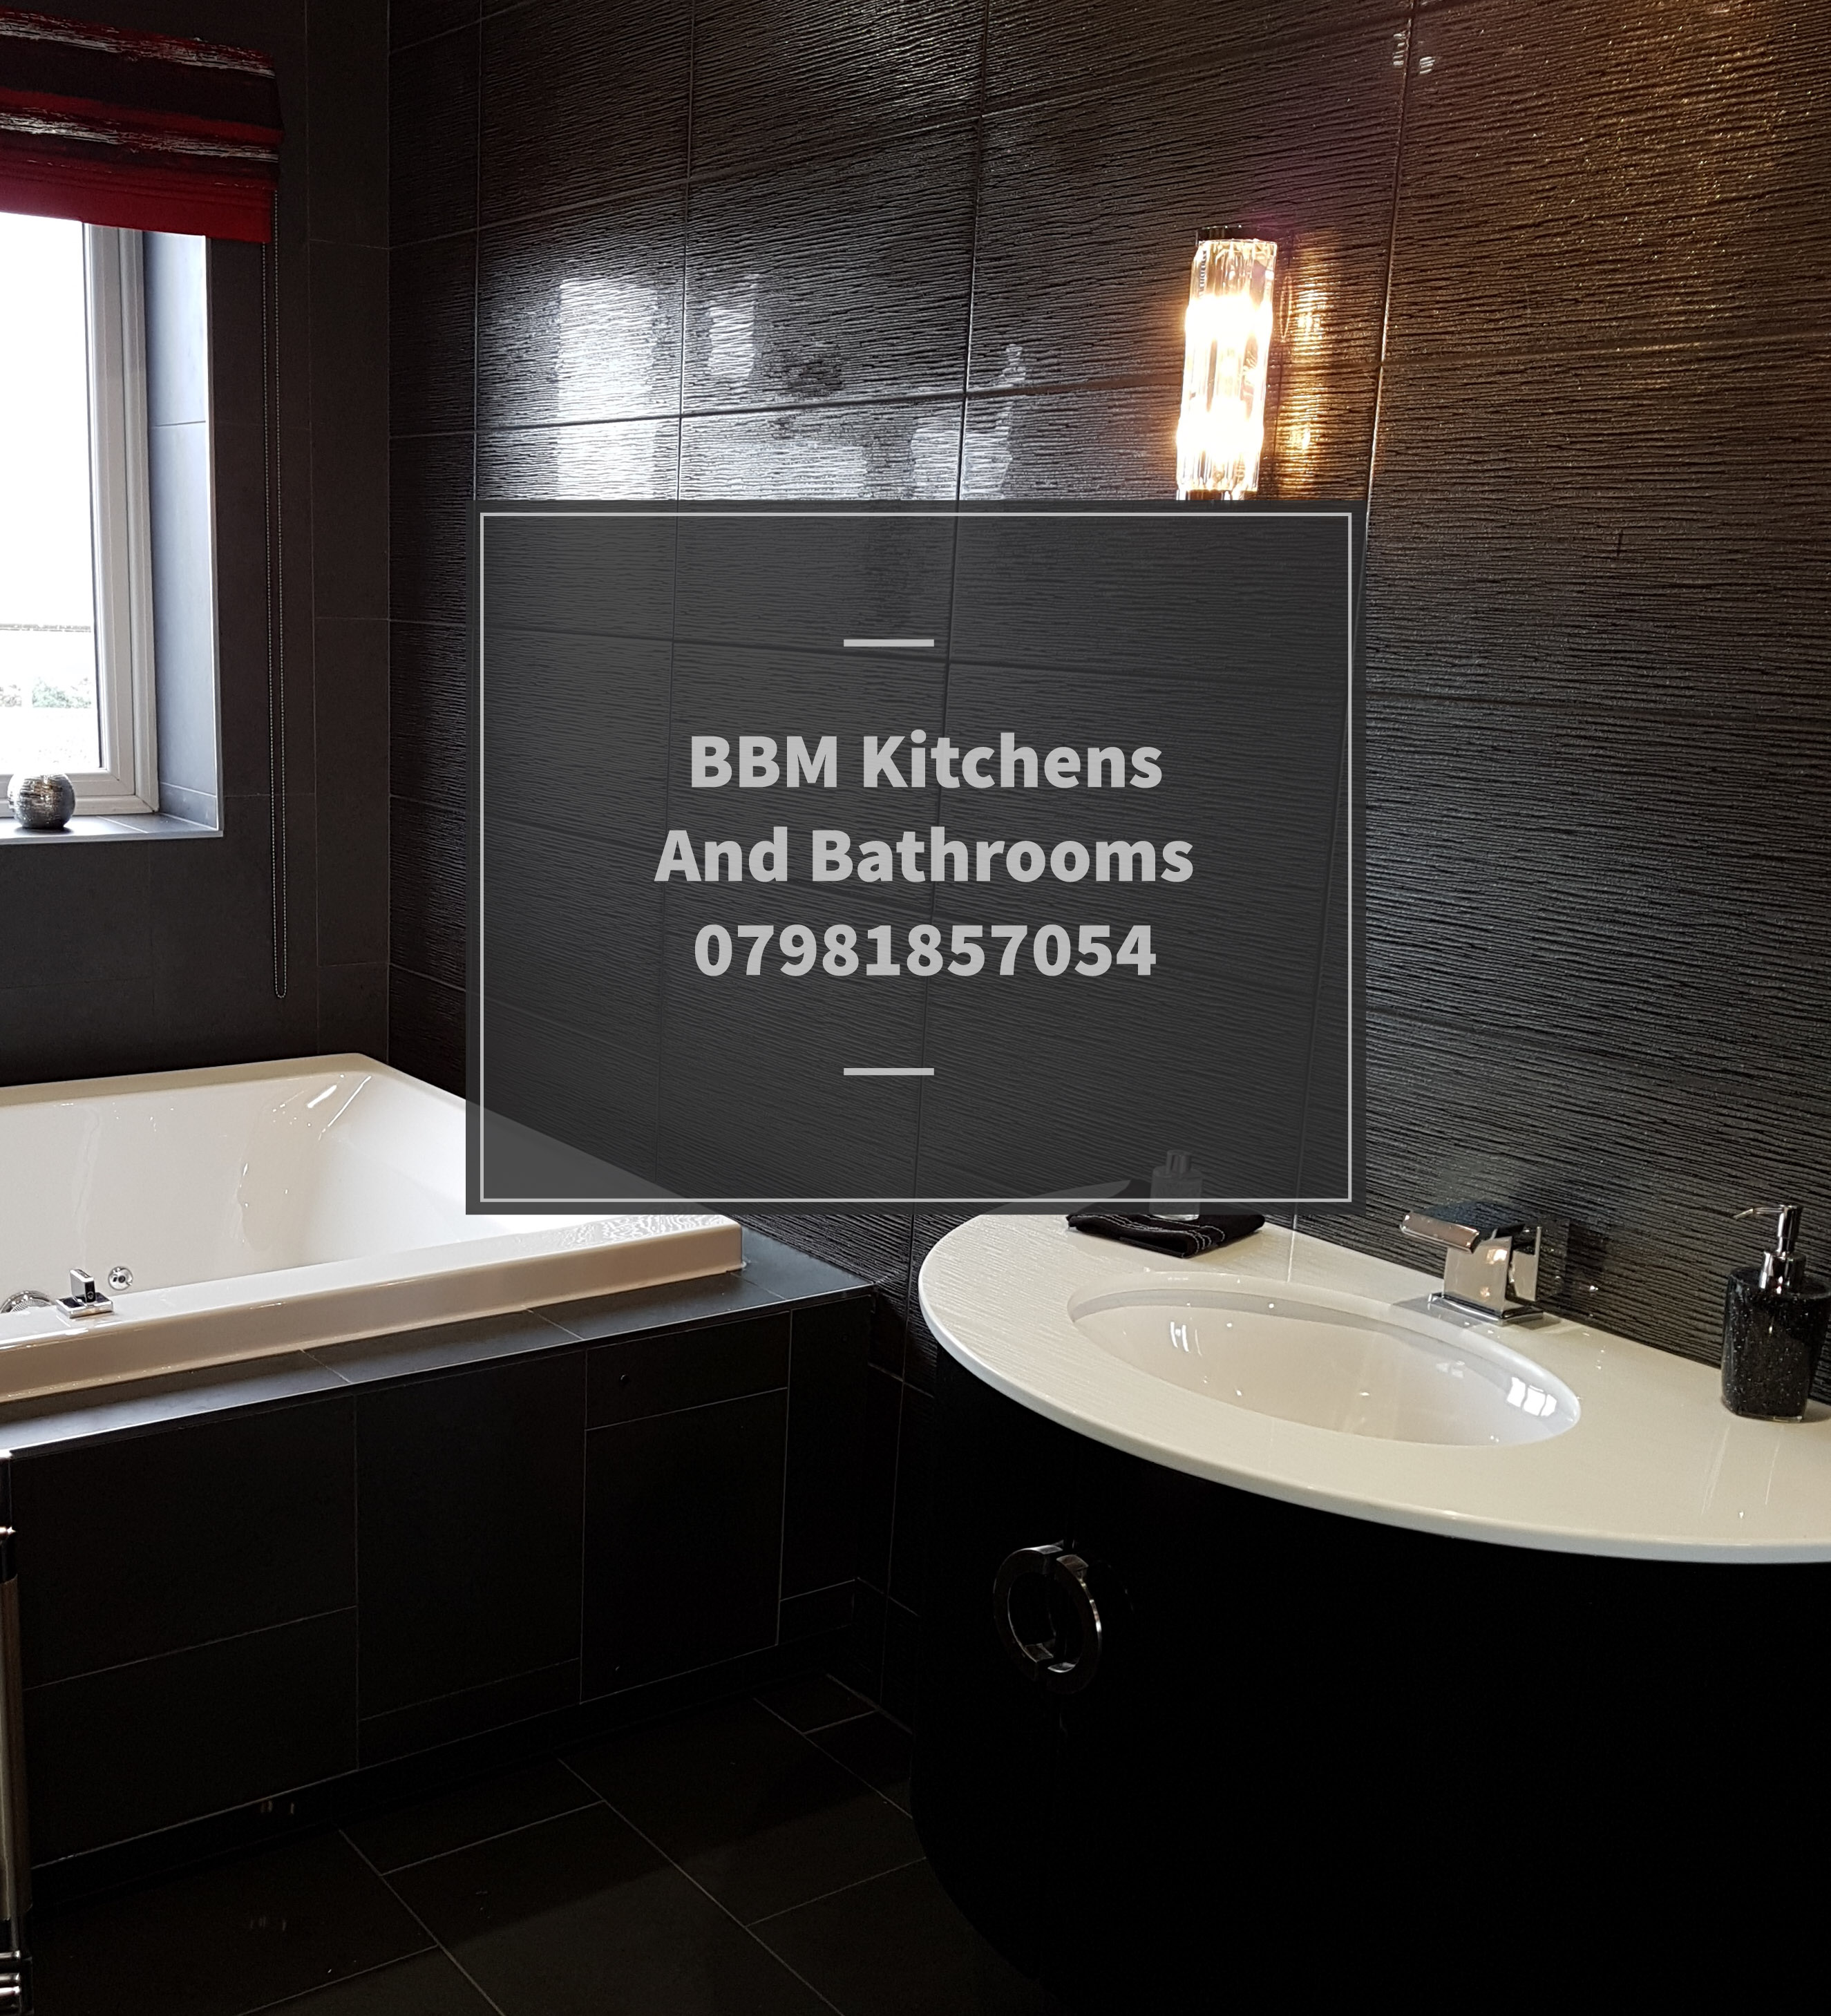 BBM Kitchens and Bathrooms